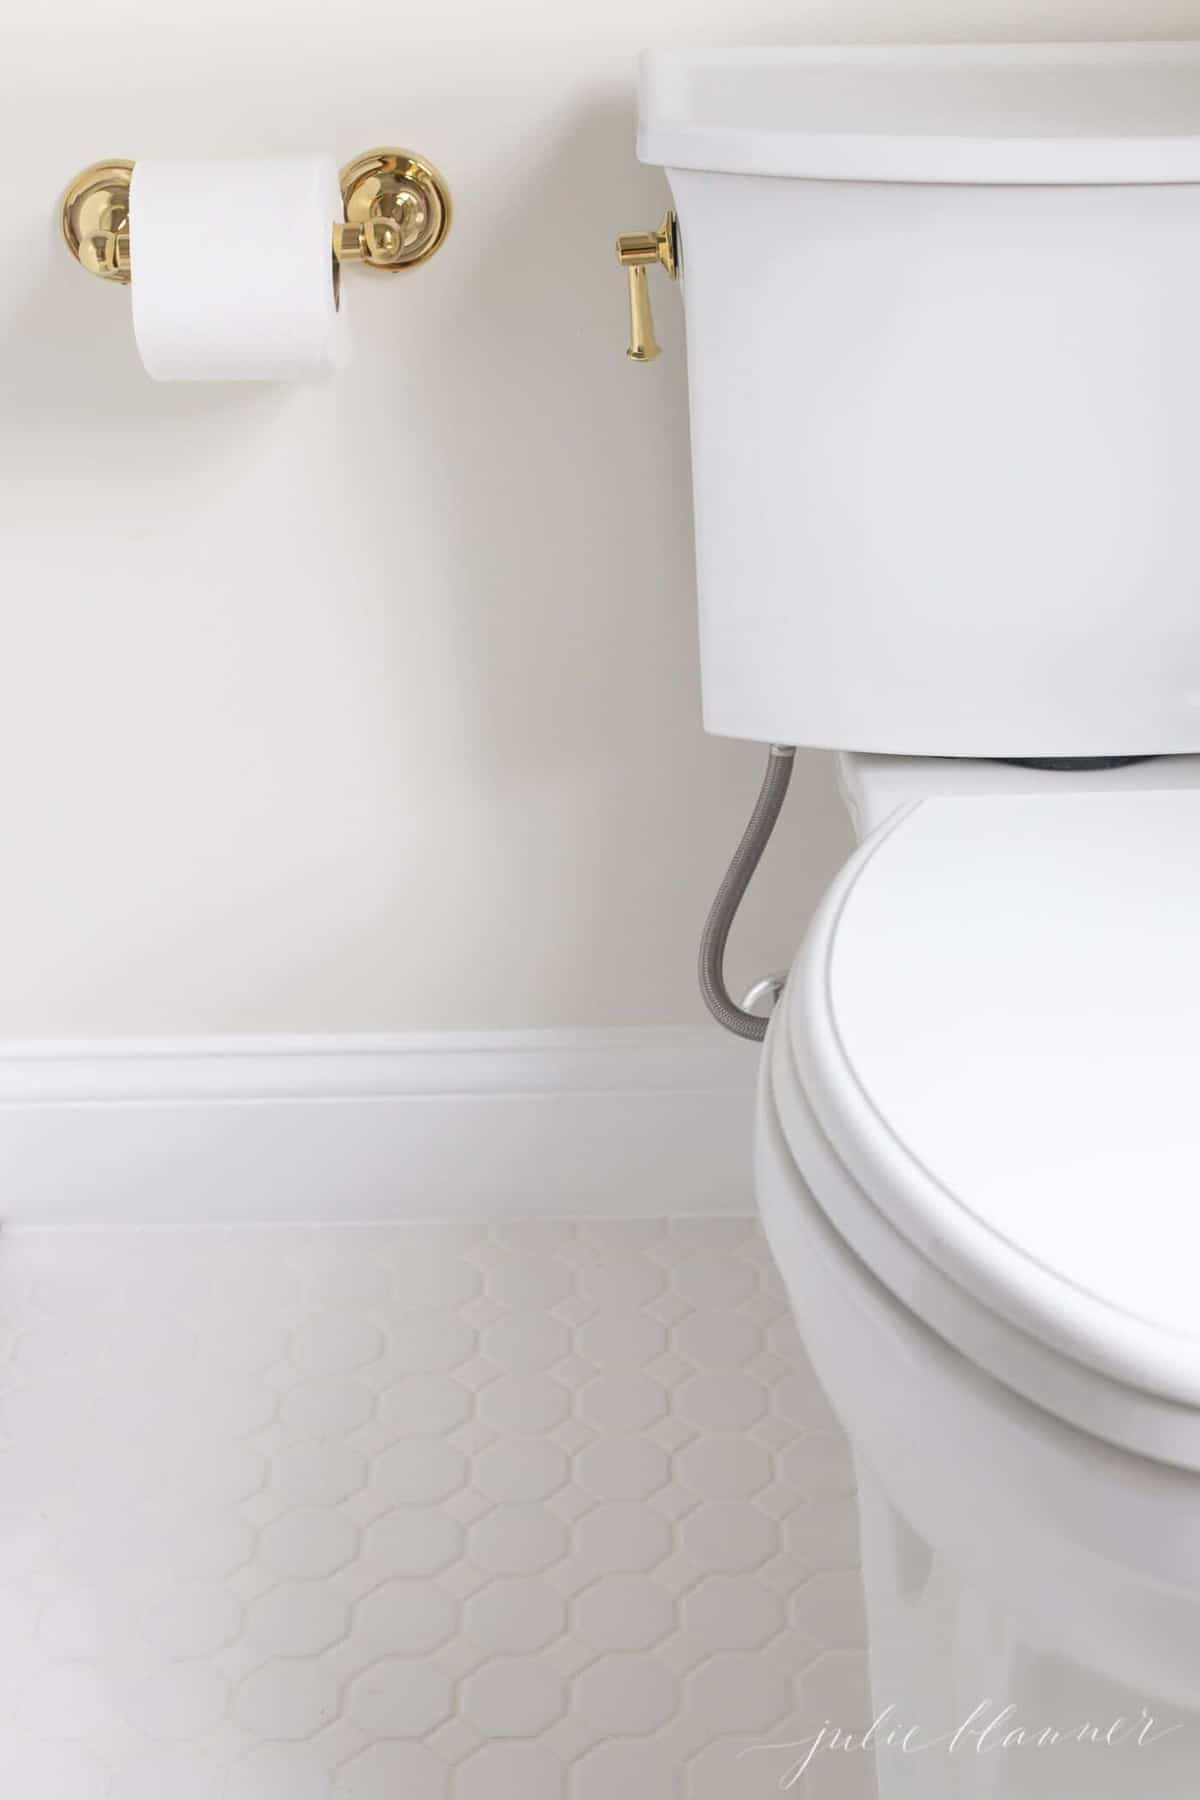 A close up of the side of a white toilet on a white floor, cream walls and white trim.